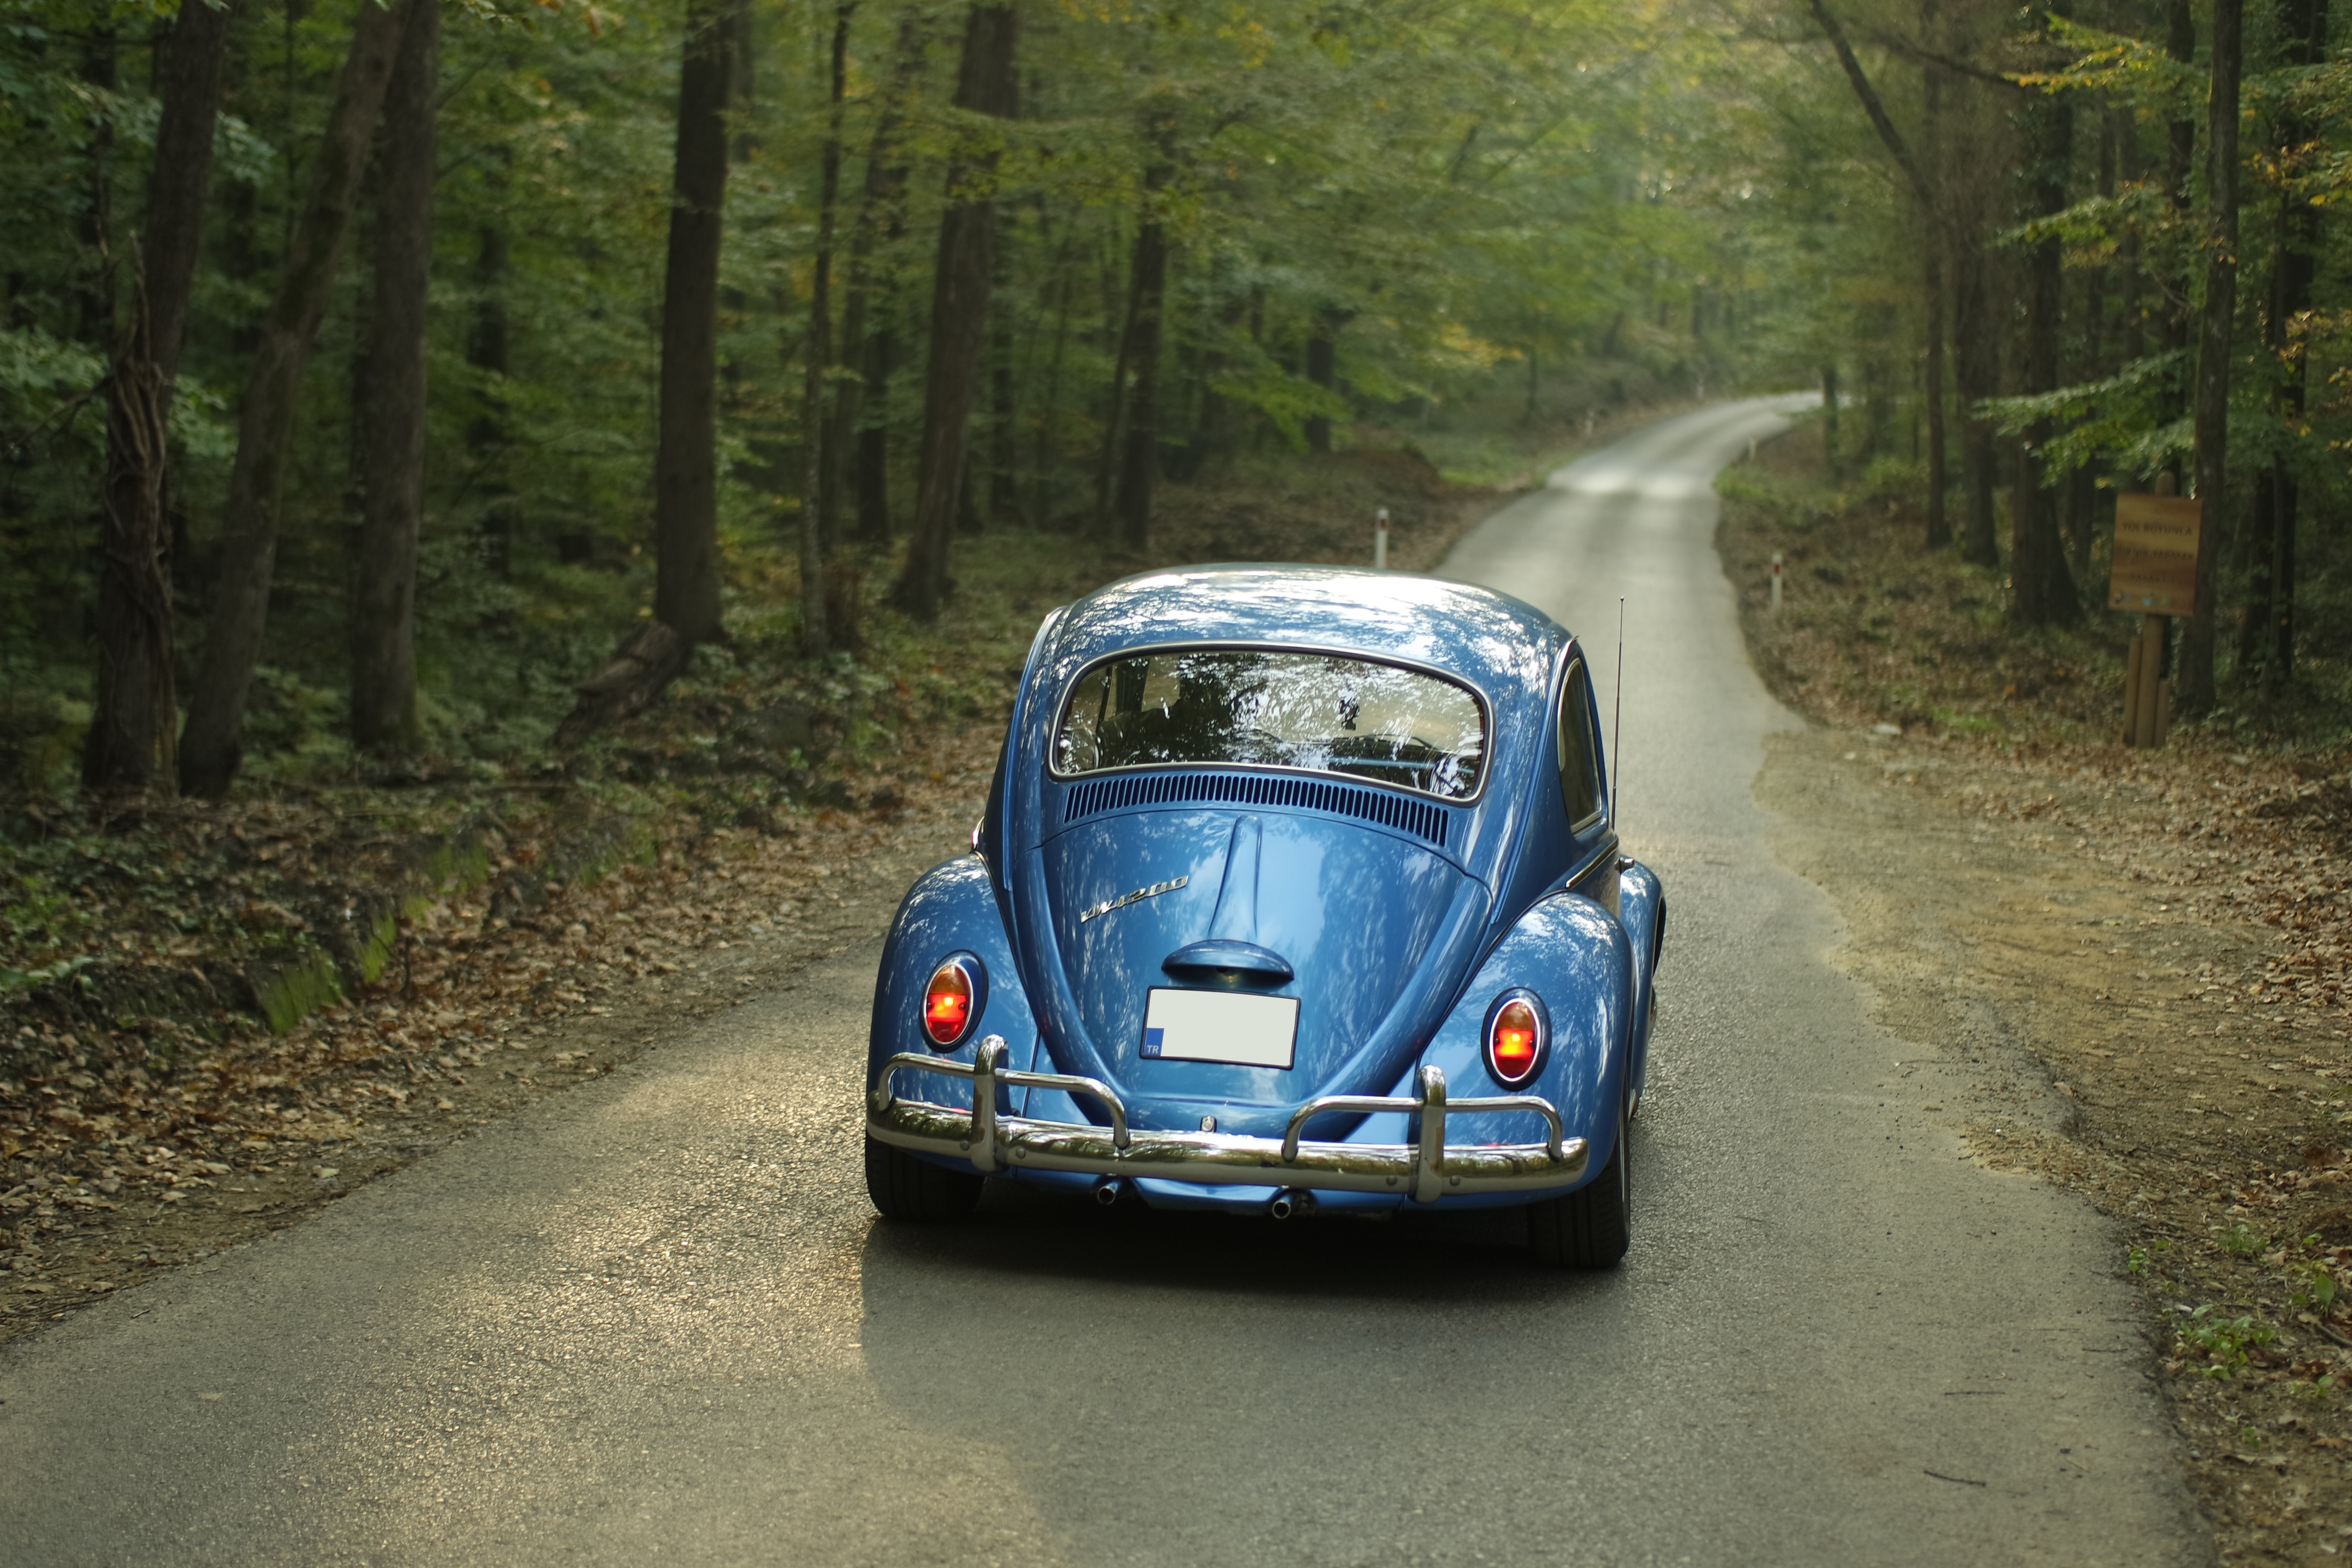 Blue Classic Volkswagen Beetle, Car, Classic car, Drive, Forest, HQ Photo